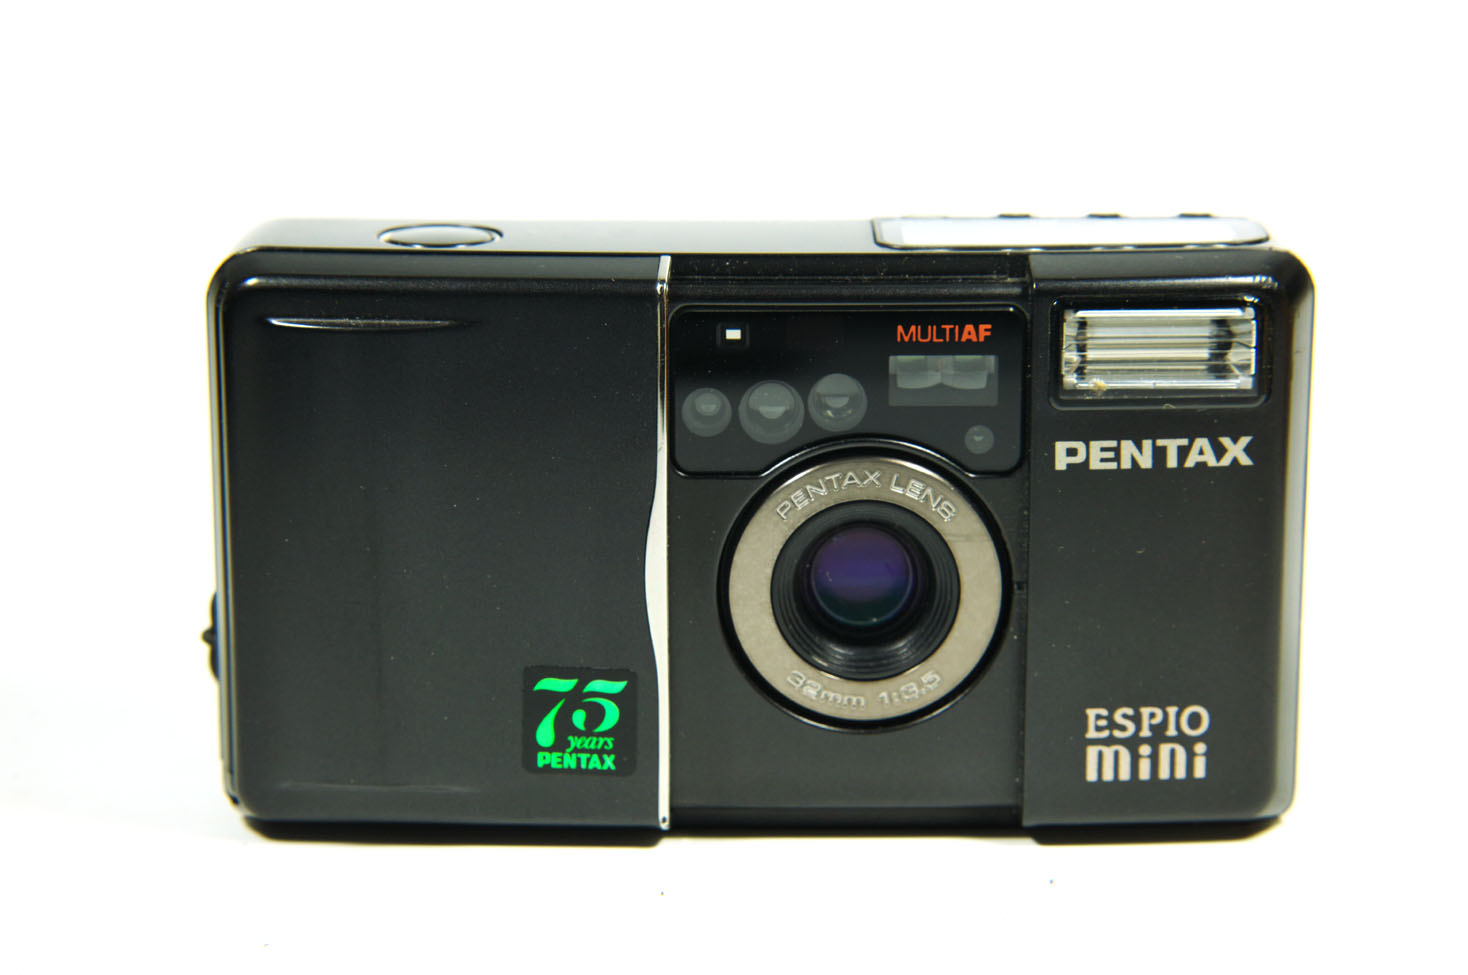 Foto & Camcorder Pentax Spotmatic Sp Ii 35mm Film Camera With Takumar 55mm F/1.8 Smc Lens